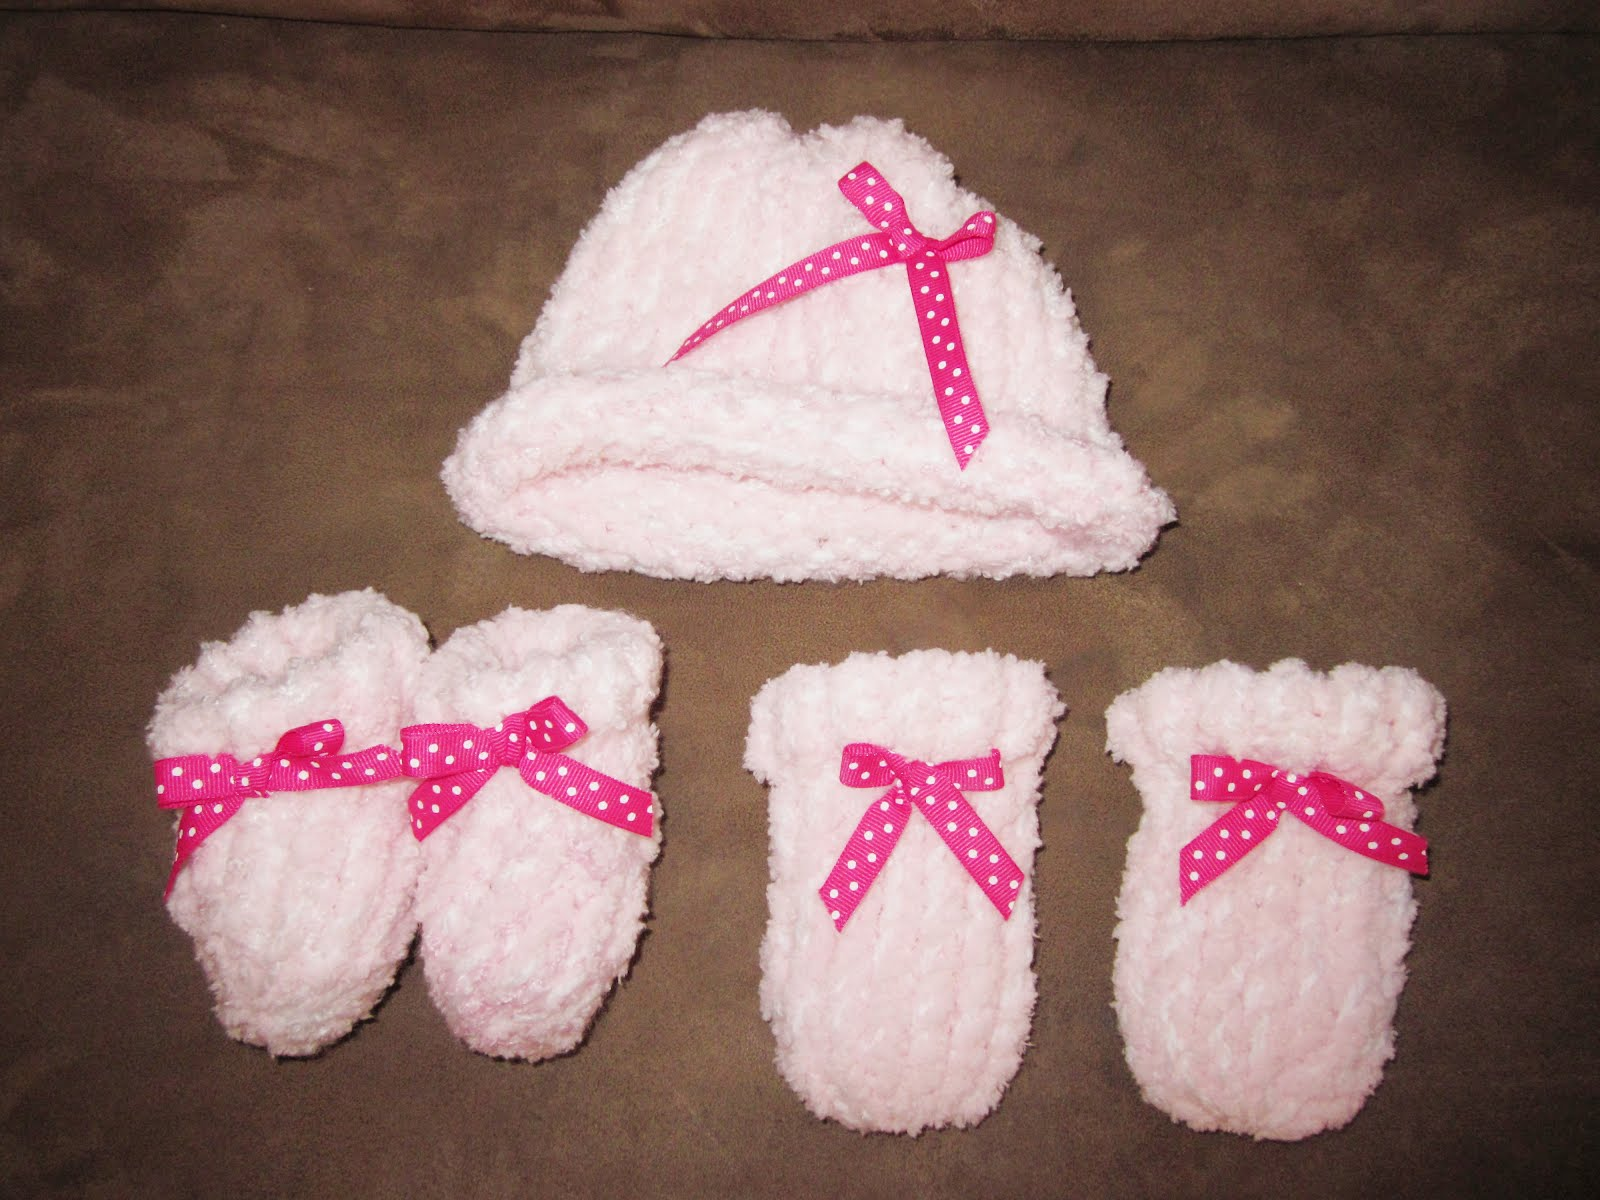 Knitting Loom Patterns Baby Hats : Loom Knitting Patterns for Babies A Knitting Blog